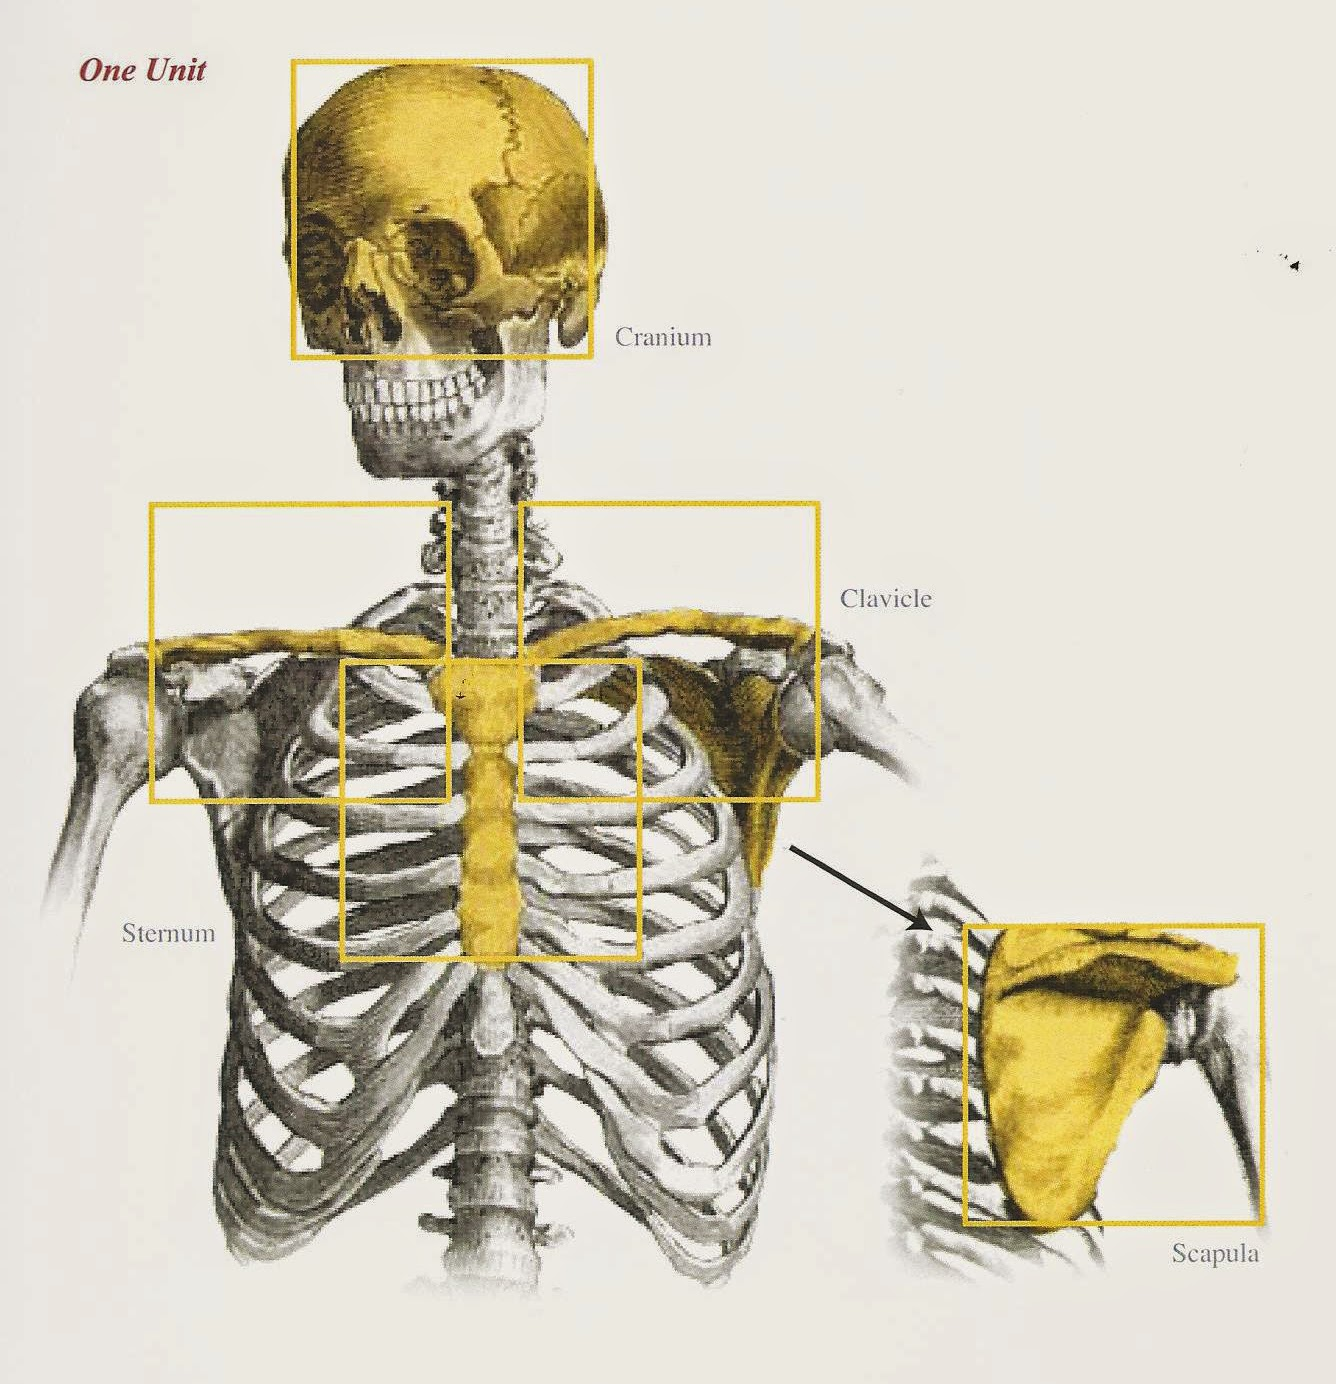 Studio Incamminati Blog: On Proportion and using the Cranial Index